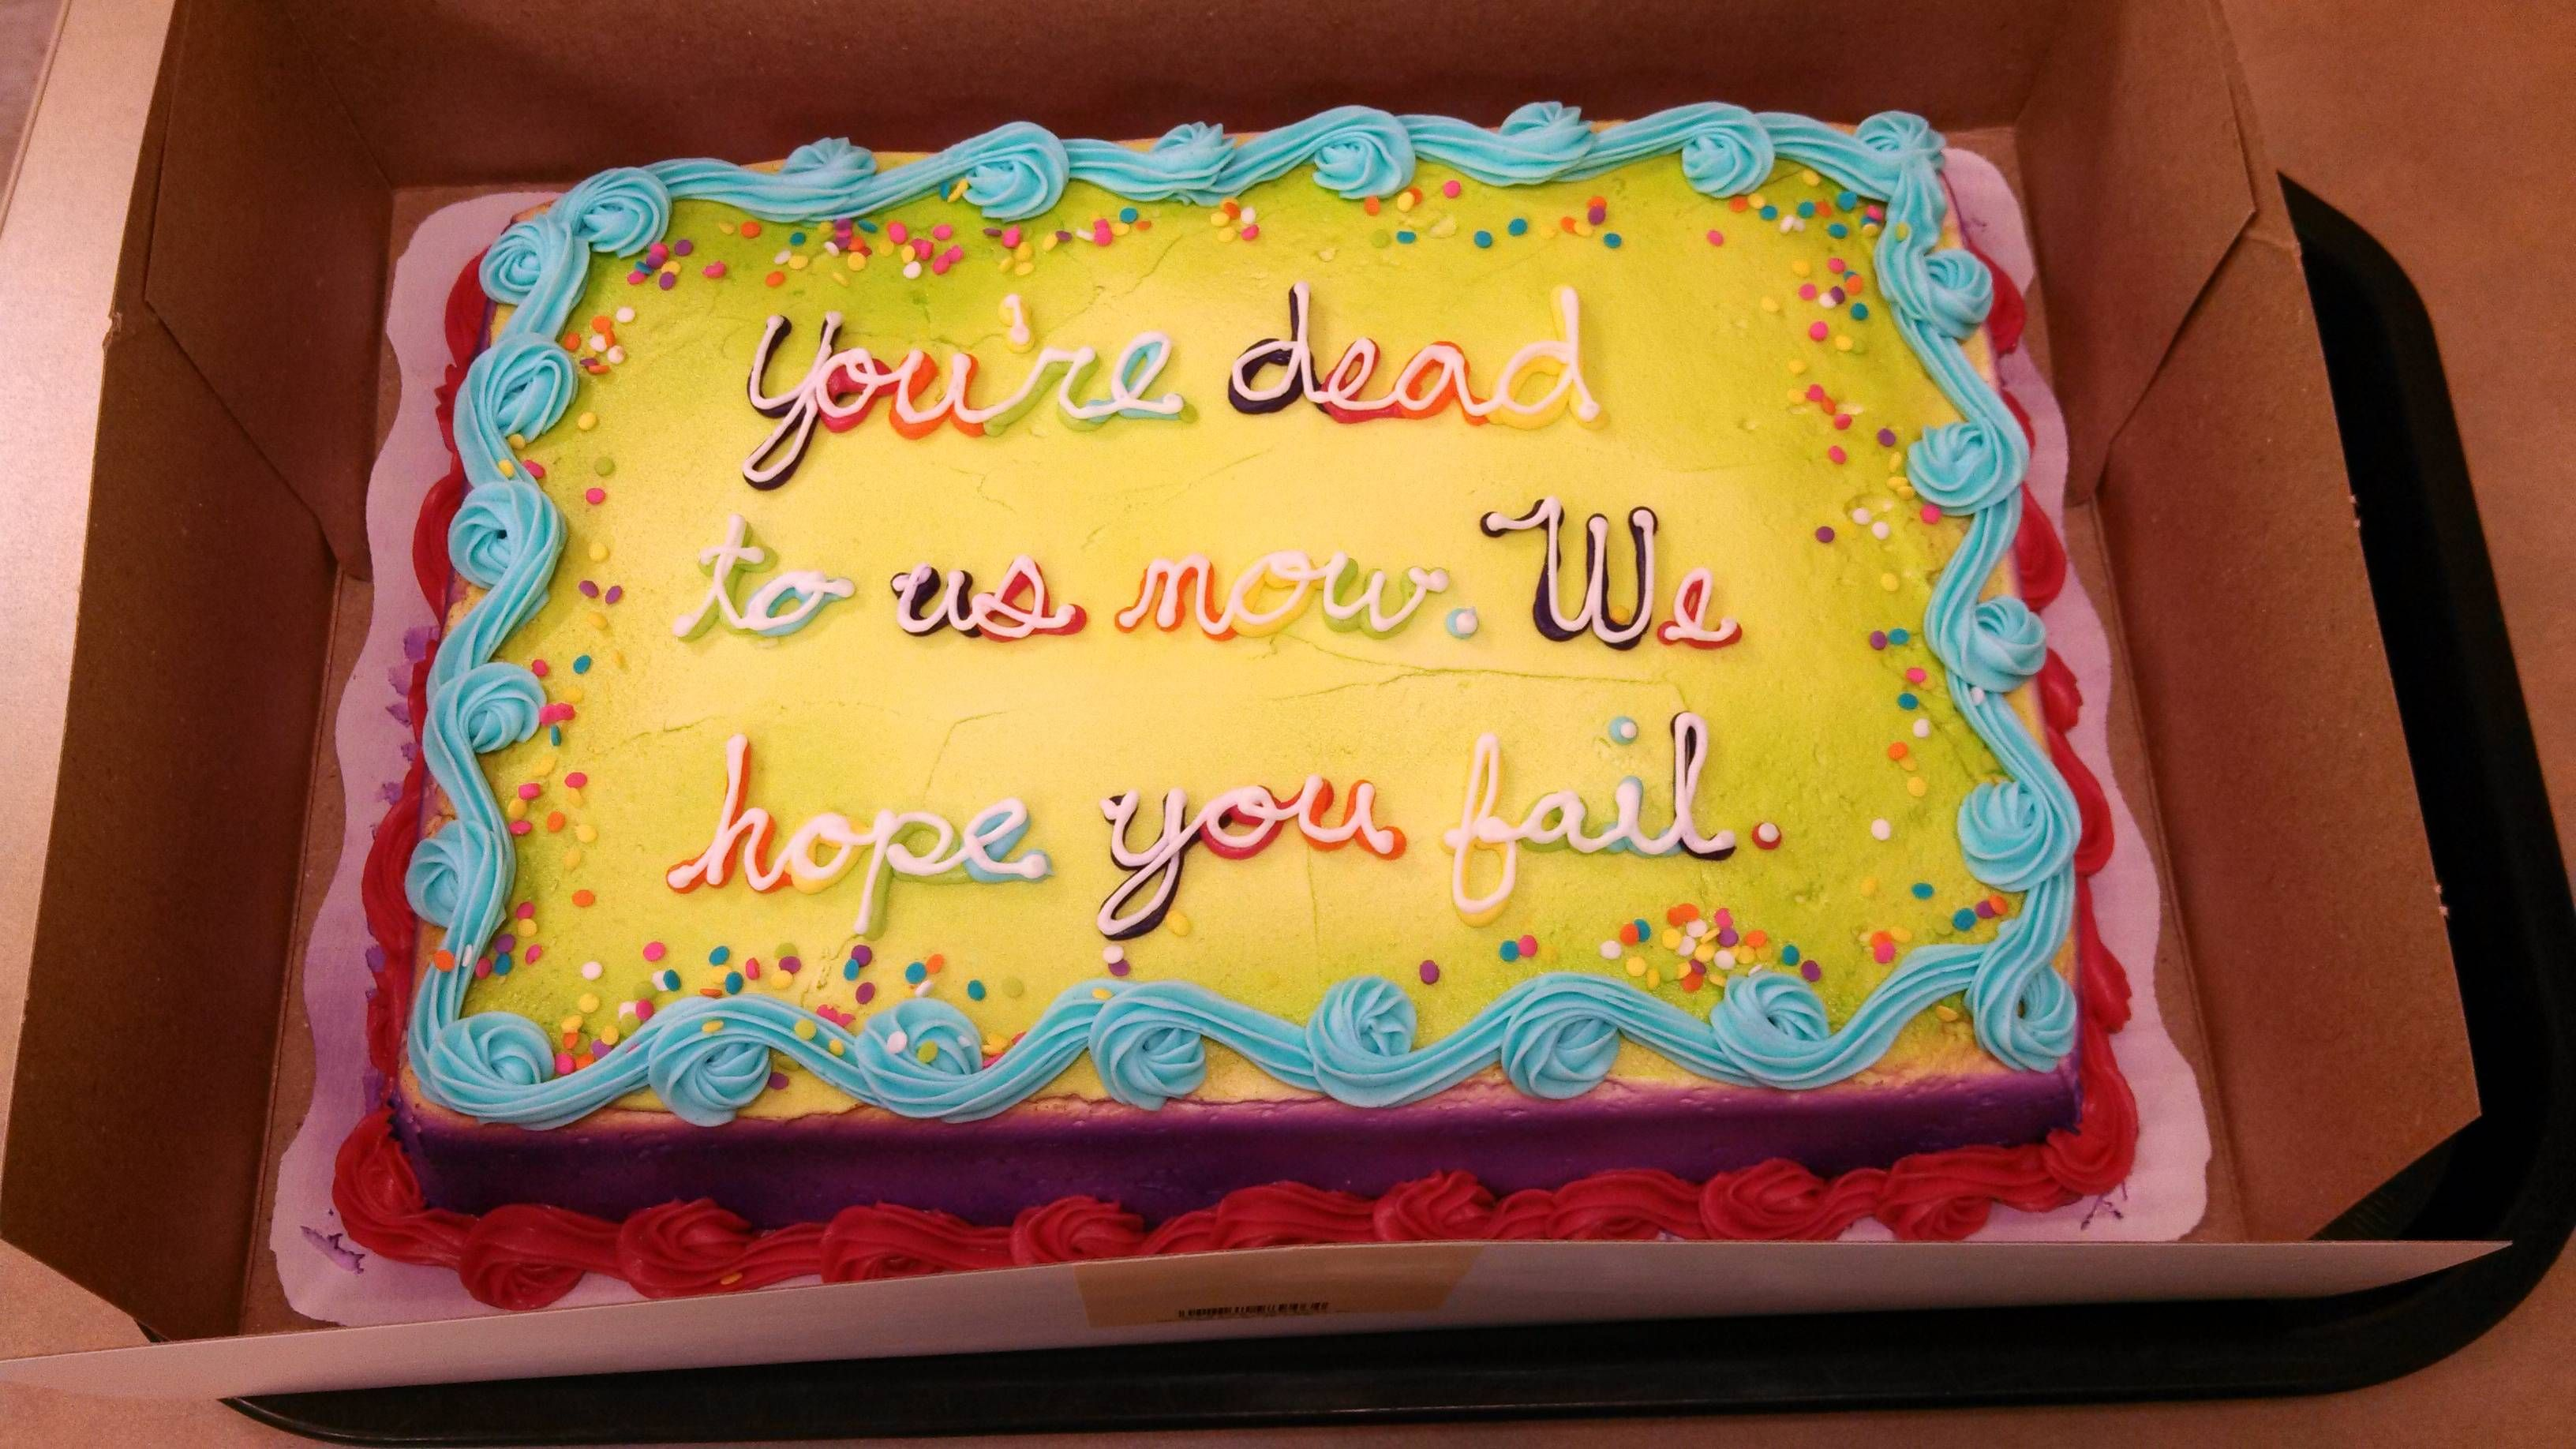 20 Best Photo Of Funny Things To Write On A Birthday Cake Funny Things To Write On A Birthday C Funny Birthday Cakes Birthday Cake Messages Going Away Cakes